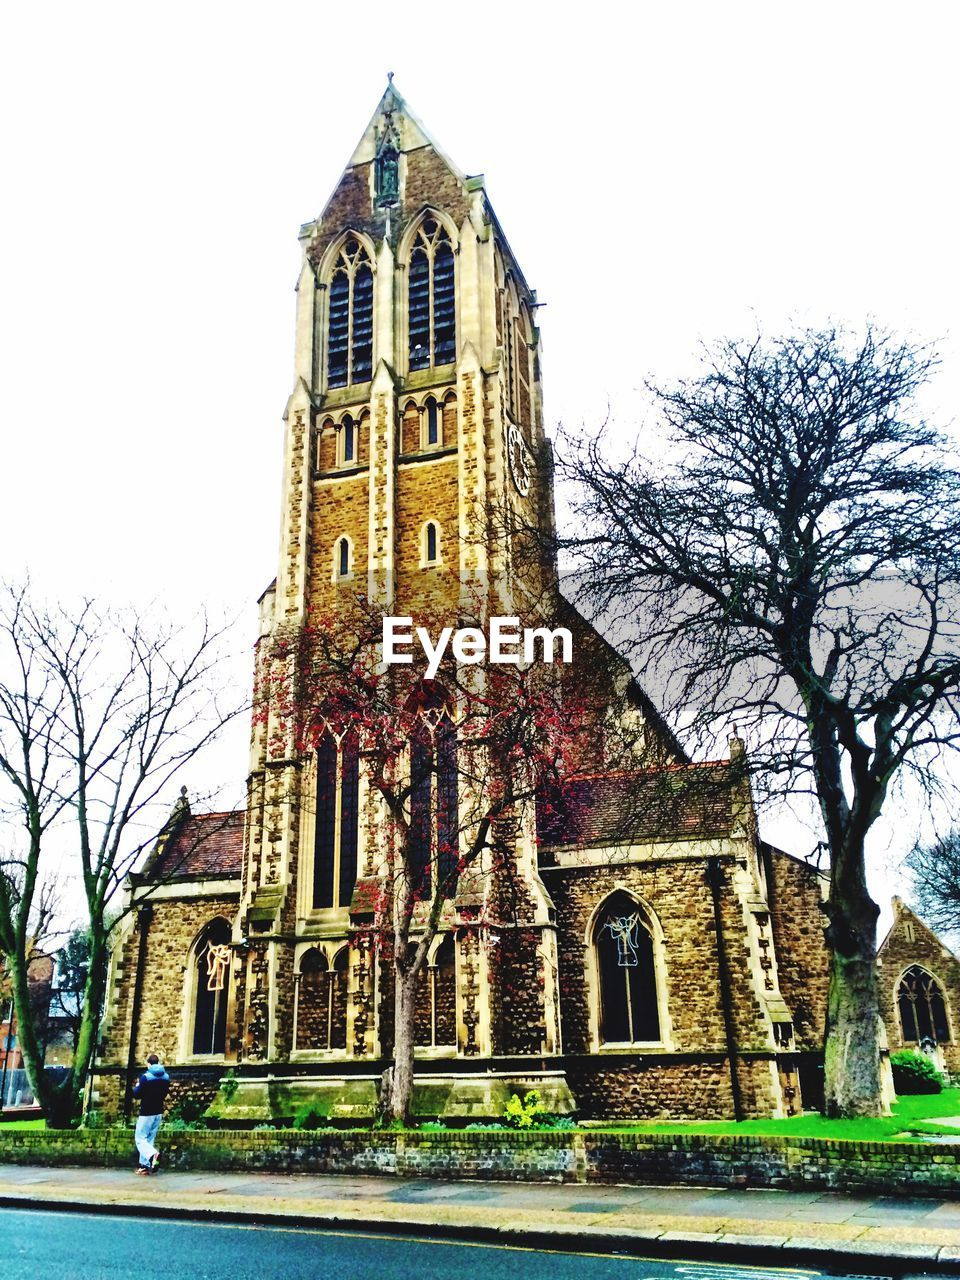 architecture, place of worship, religion, built structure, building exterior, bare tree, low angle view, tower, spirituality, travel destinations, day, history, tree, outdoors, sky, no people, clock tower, clear sky, branch